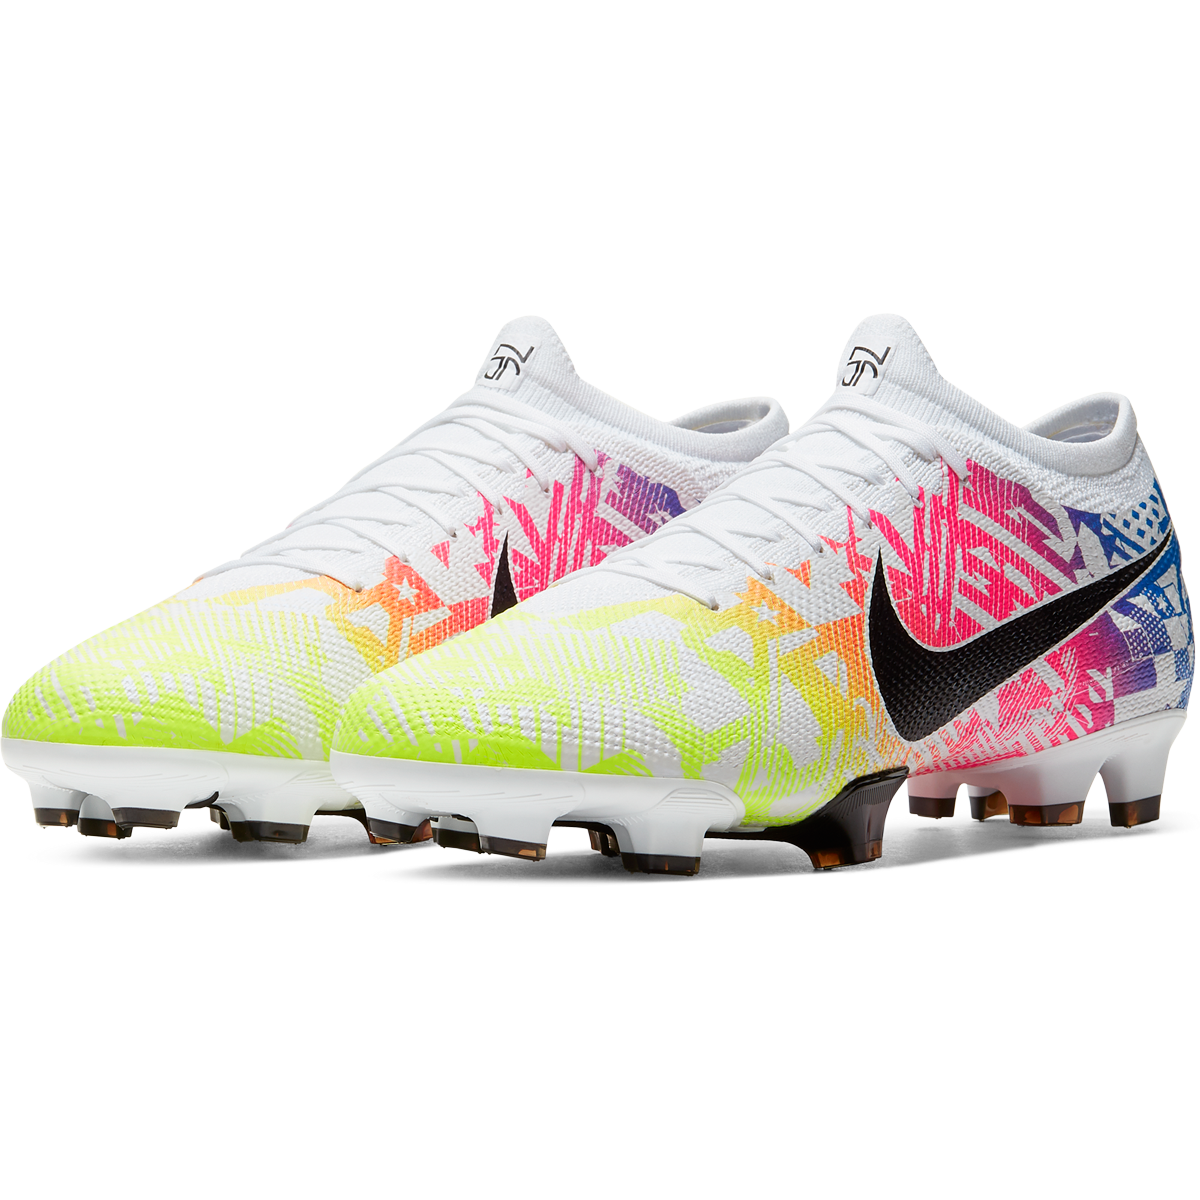 Nike Mercurial Vapor 13 Pro Njr Fg Soccer Cleat White Black Racer Blue Volt 5 5 In 2020 Soccer Cleats Nike Girls Nike Soccer Shoes Womens Soccer Cleats